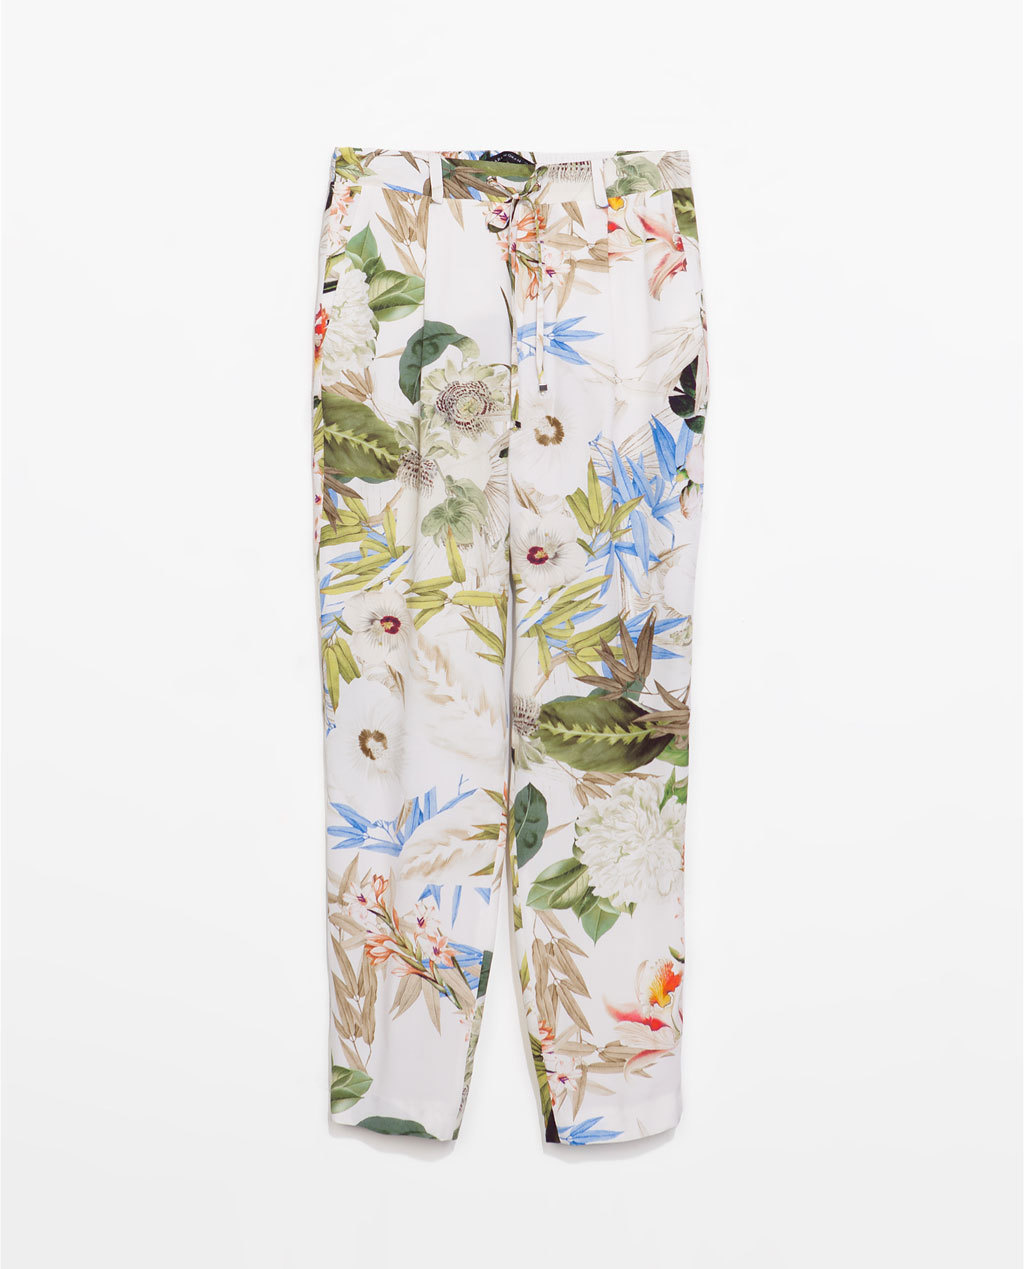 Flower Print Trousers - style: peg leg; waist: mid/regular rise; occasions: casual, creative work; length: ankle length; fibres: viscose/rayon - 100%; predominant colour: multicoloured; fit: tapered; pattern type: fabric; pattern: florals; texture group: other - light to midweight; trends: furious florals; season: s/s 2014; pattern size: big & busy (bottom); multicoloured: multicoloured